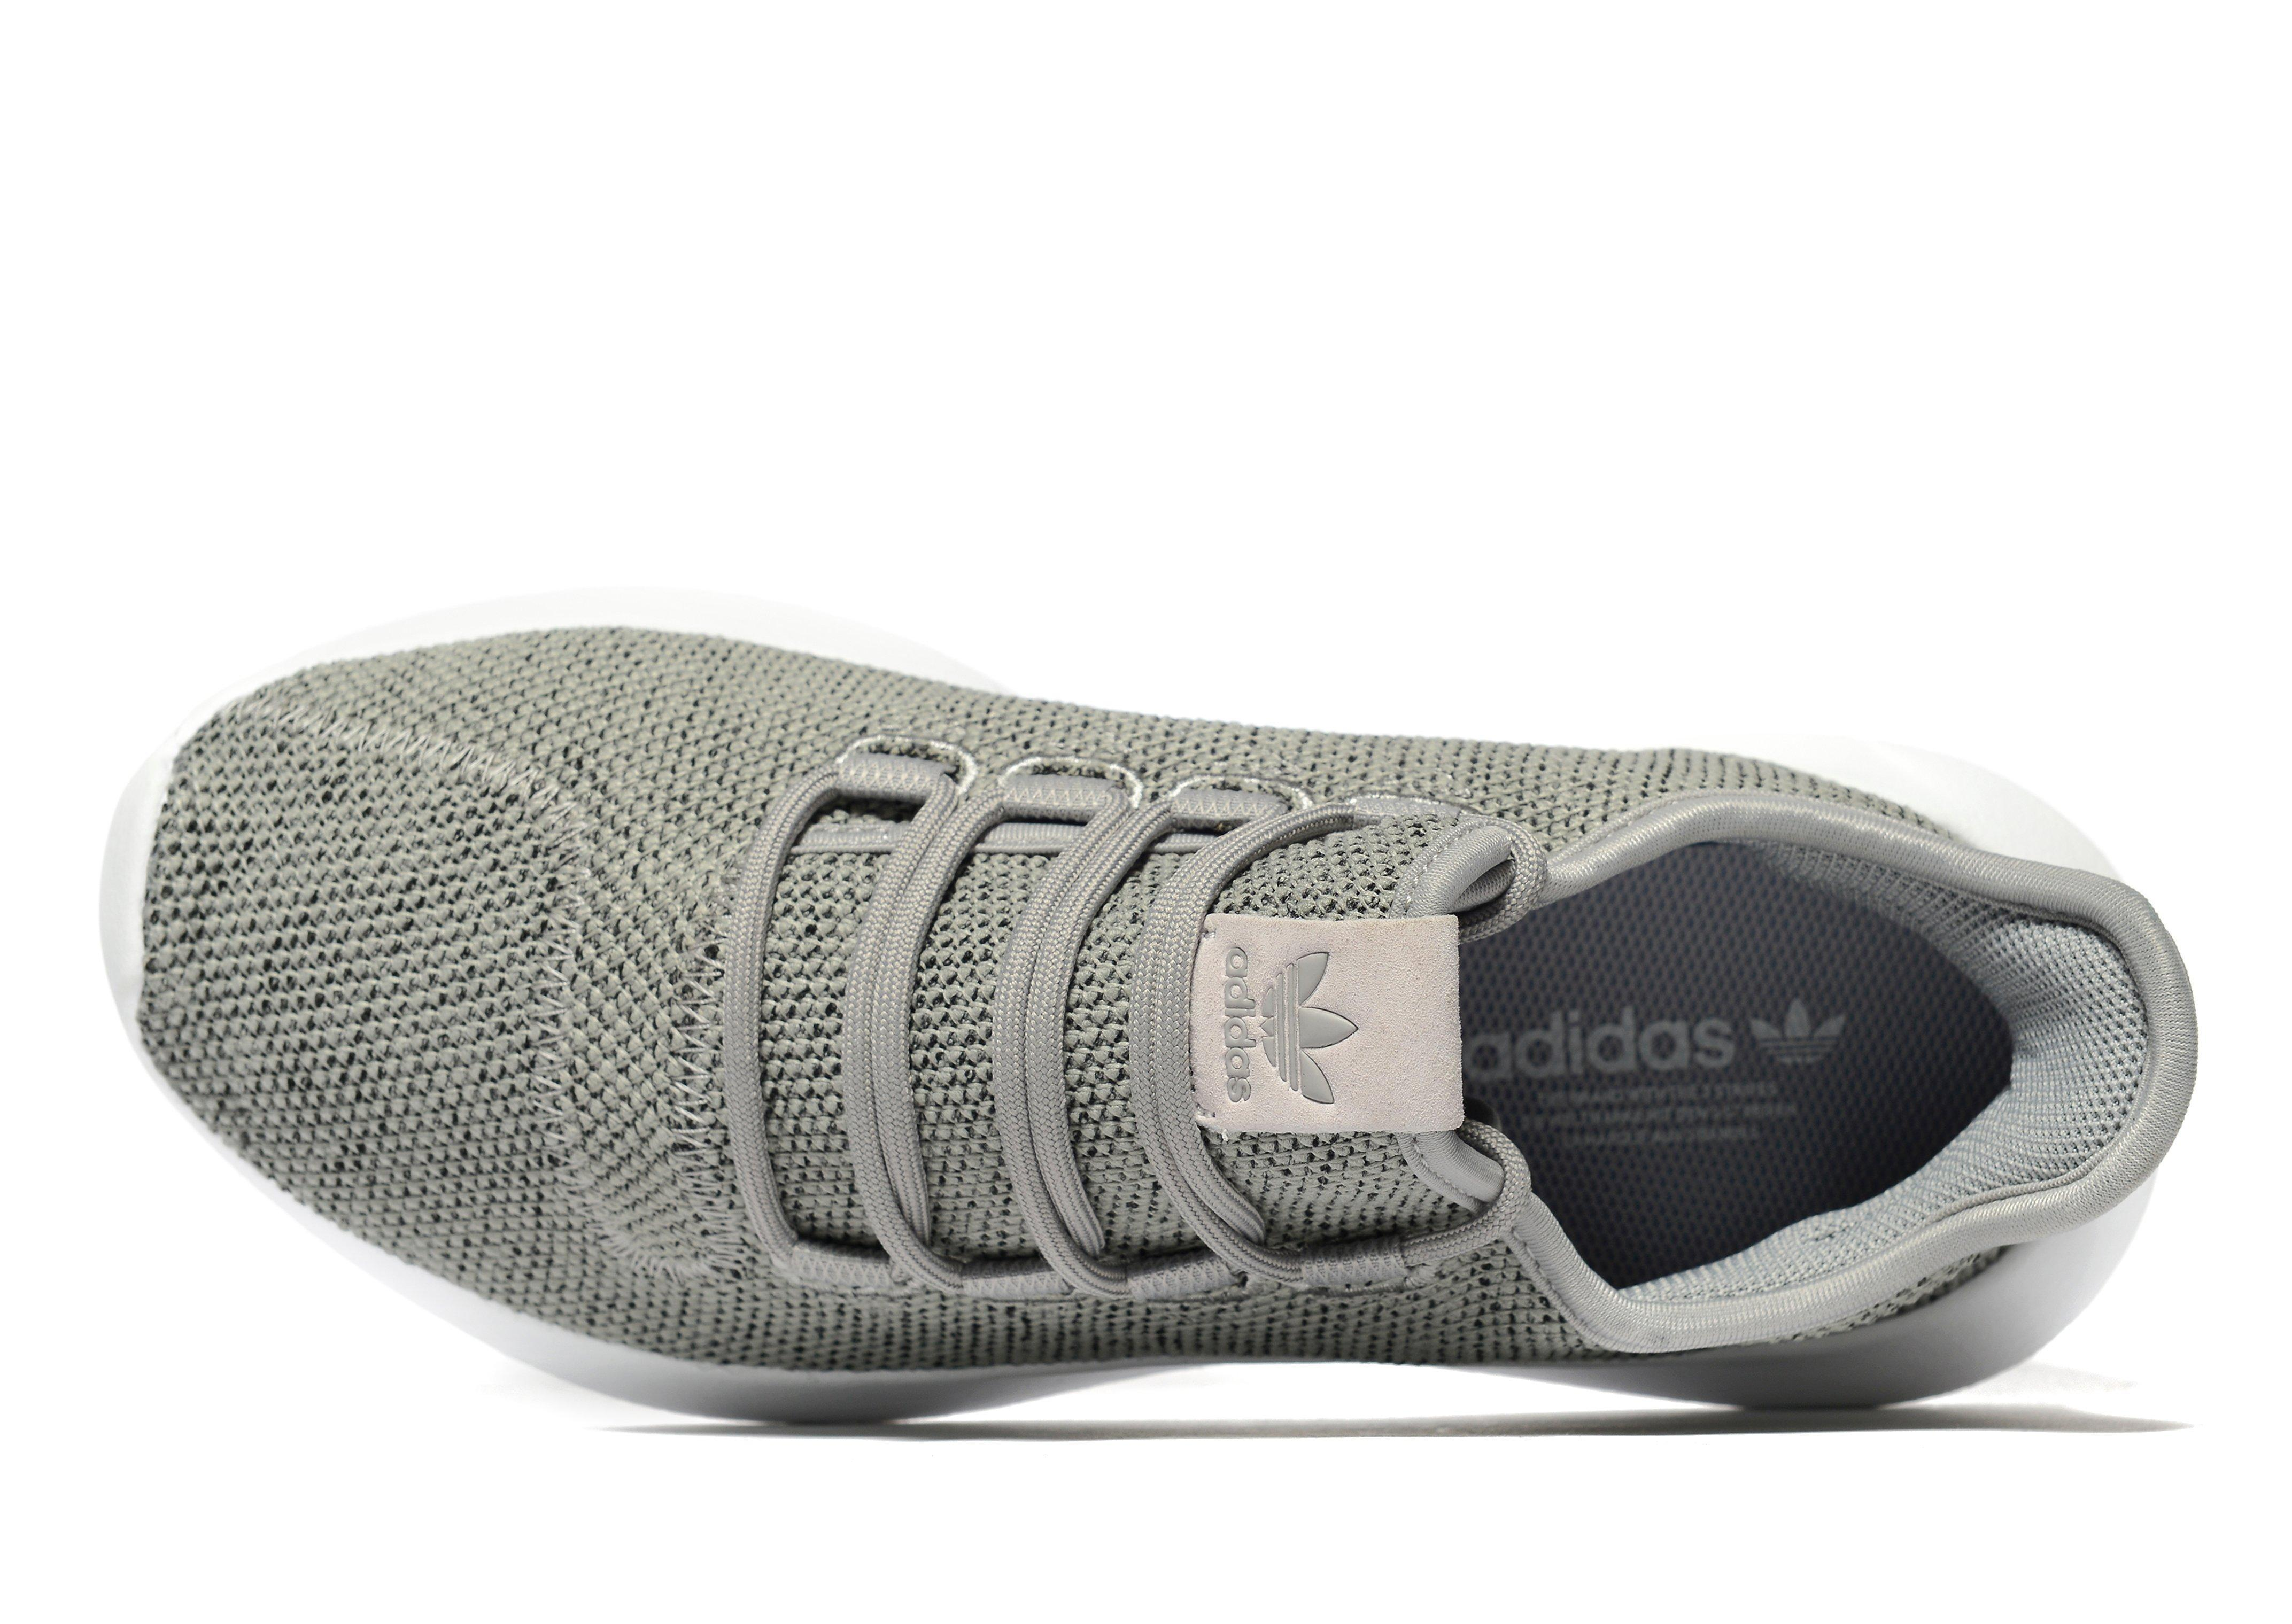 lyst adidas originals tubular shadow trainers in gray. Black Bedroom Furniture Sets. Home Design Ideas